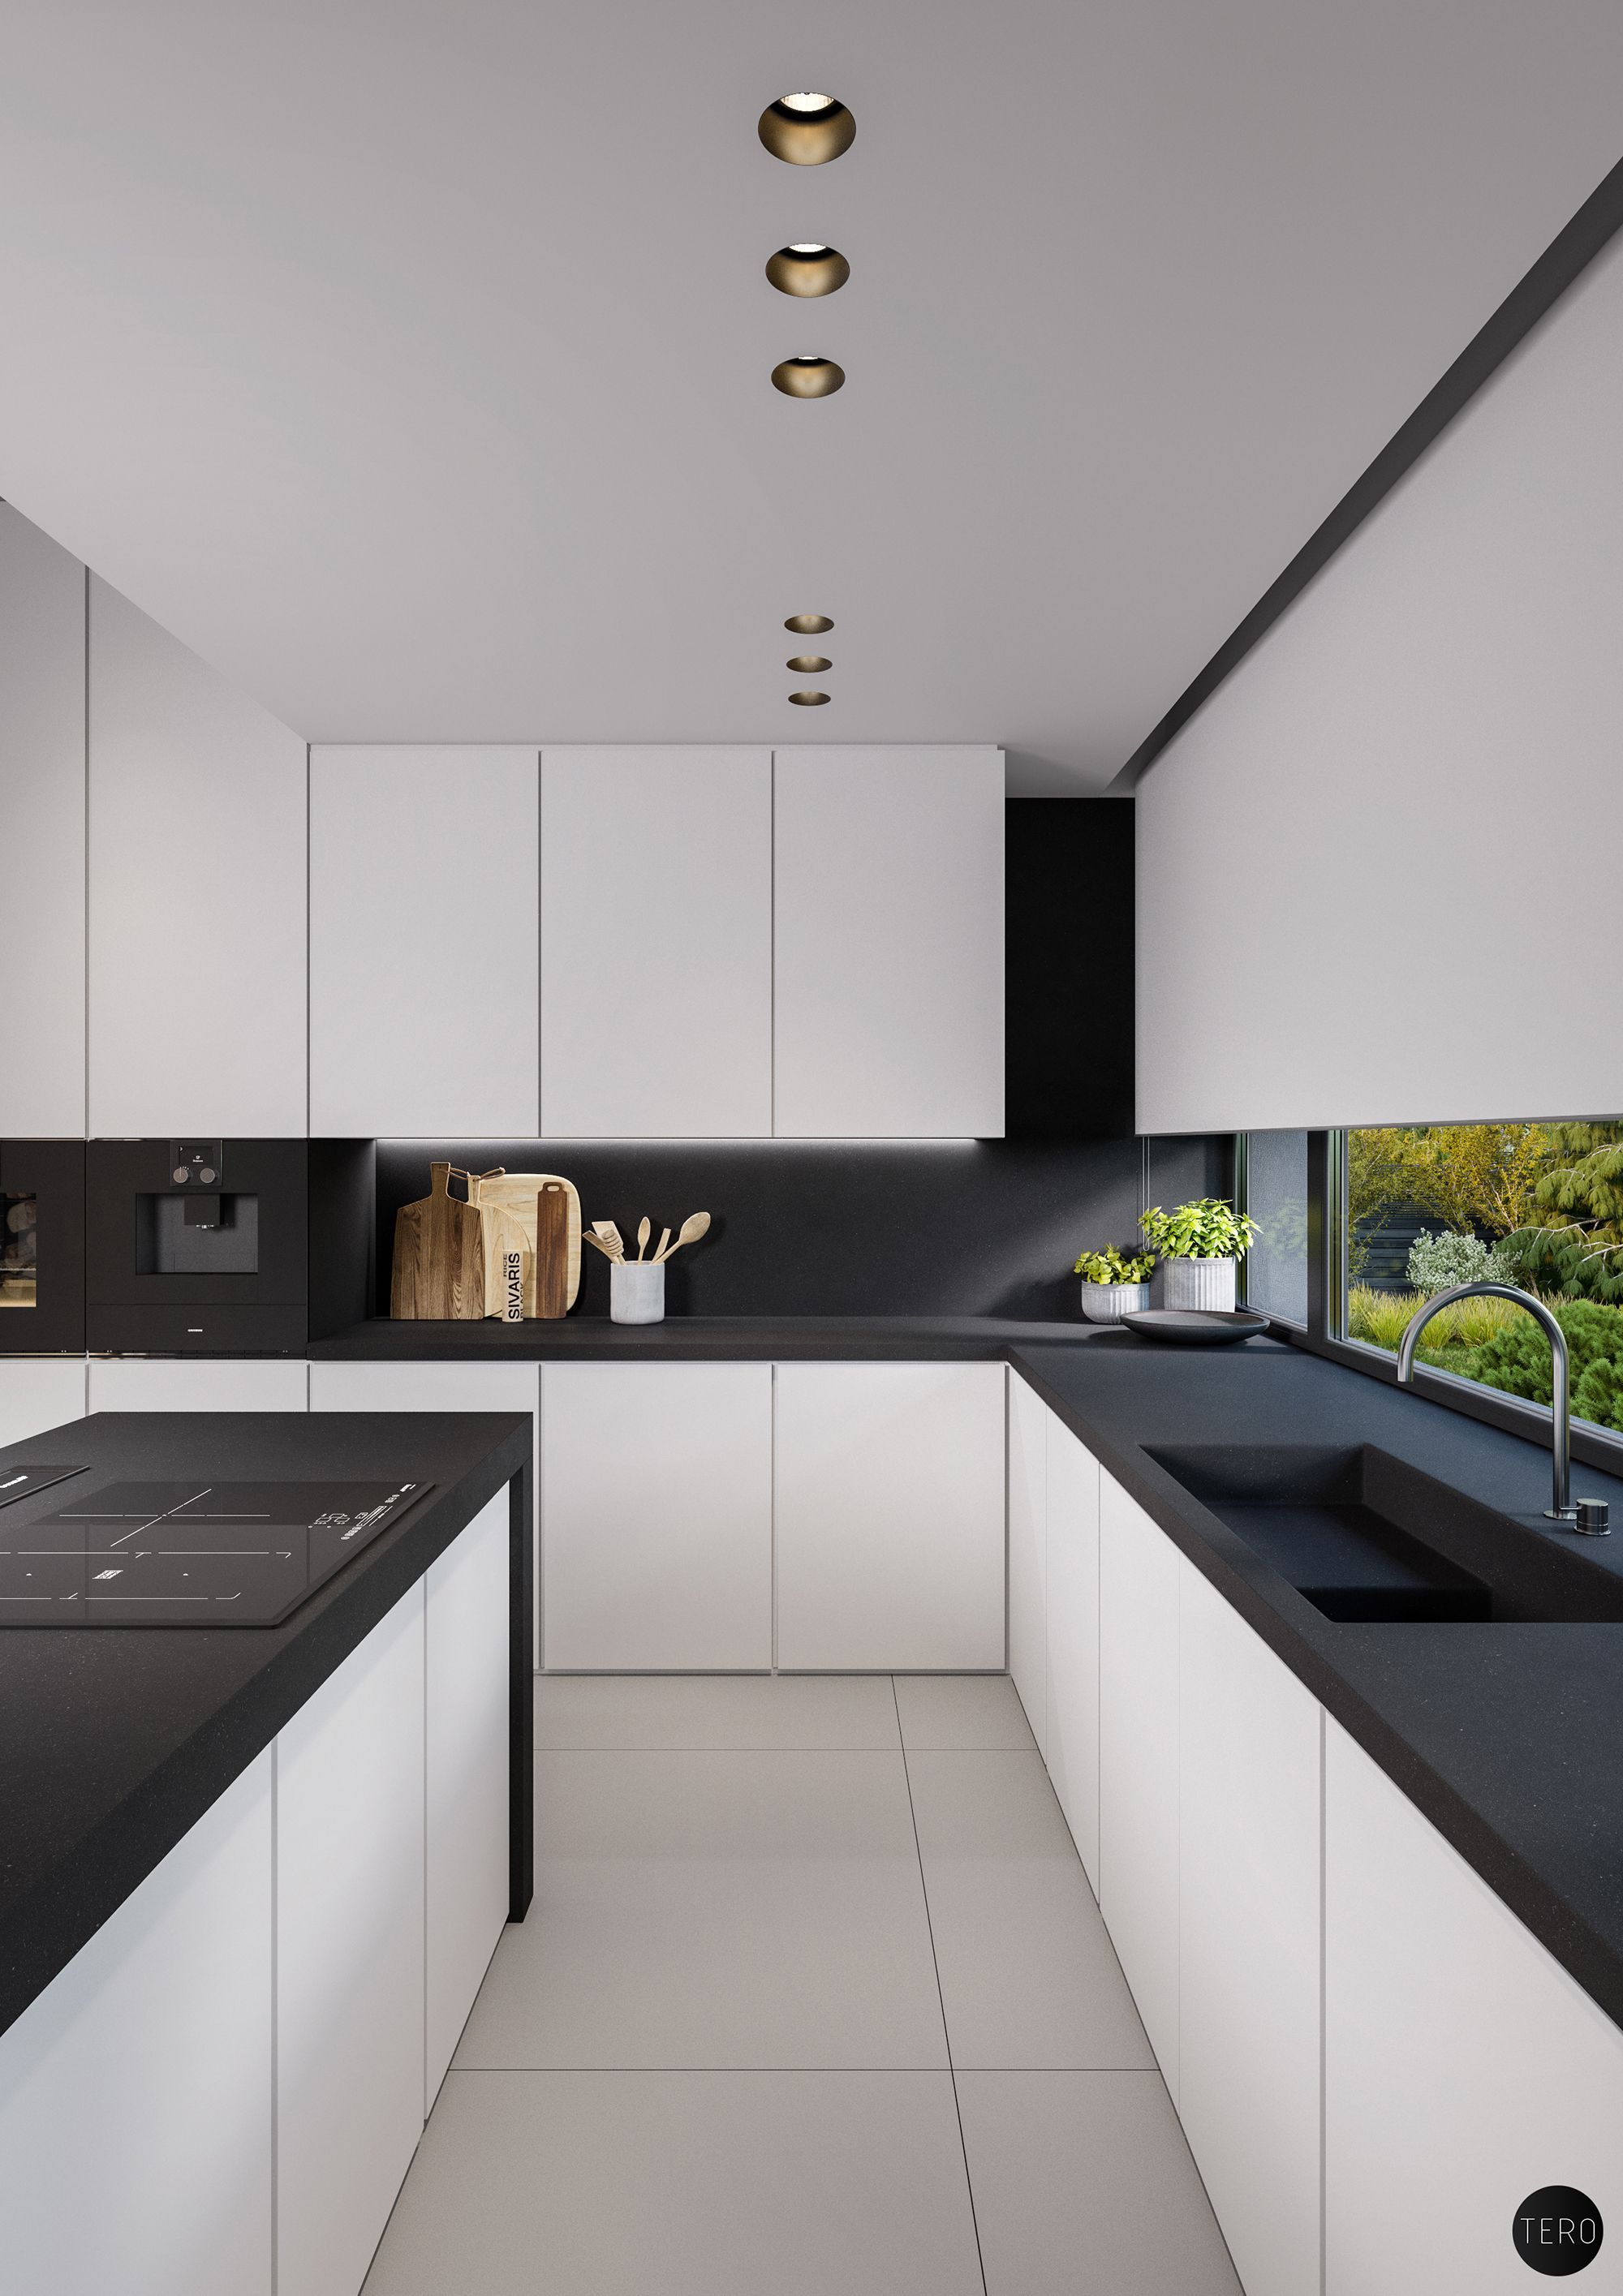 House In Olsztyn Poland Project Is Made By Tamizo Architects Lodz Poland Visualization By Terodes White Kitchen Decor Modern Kitchen Kitchen Cabinet Design